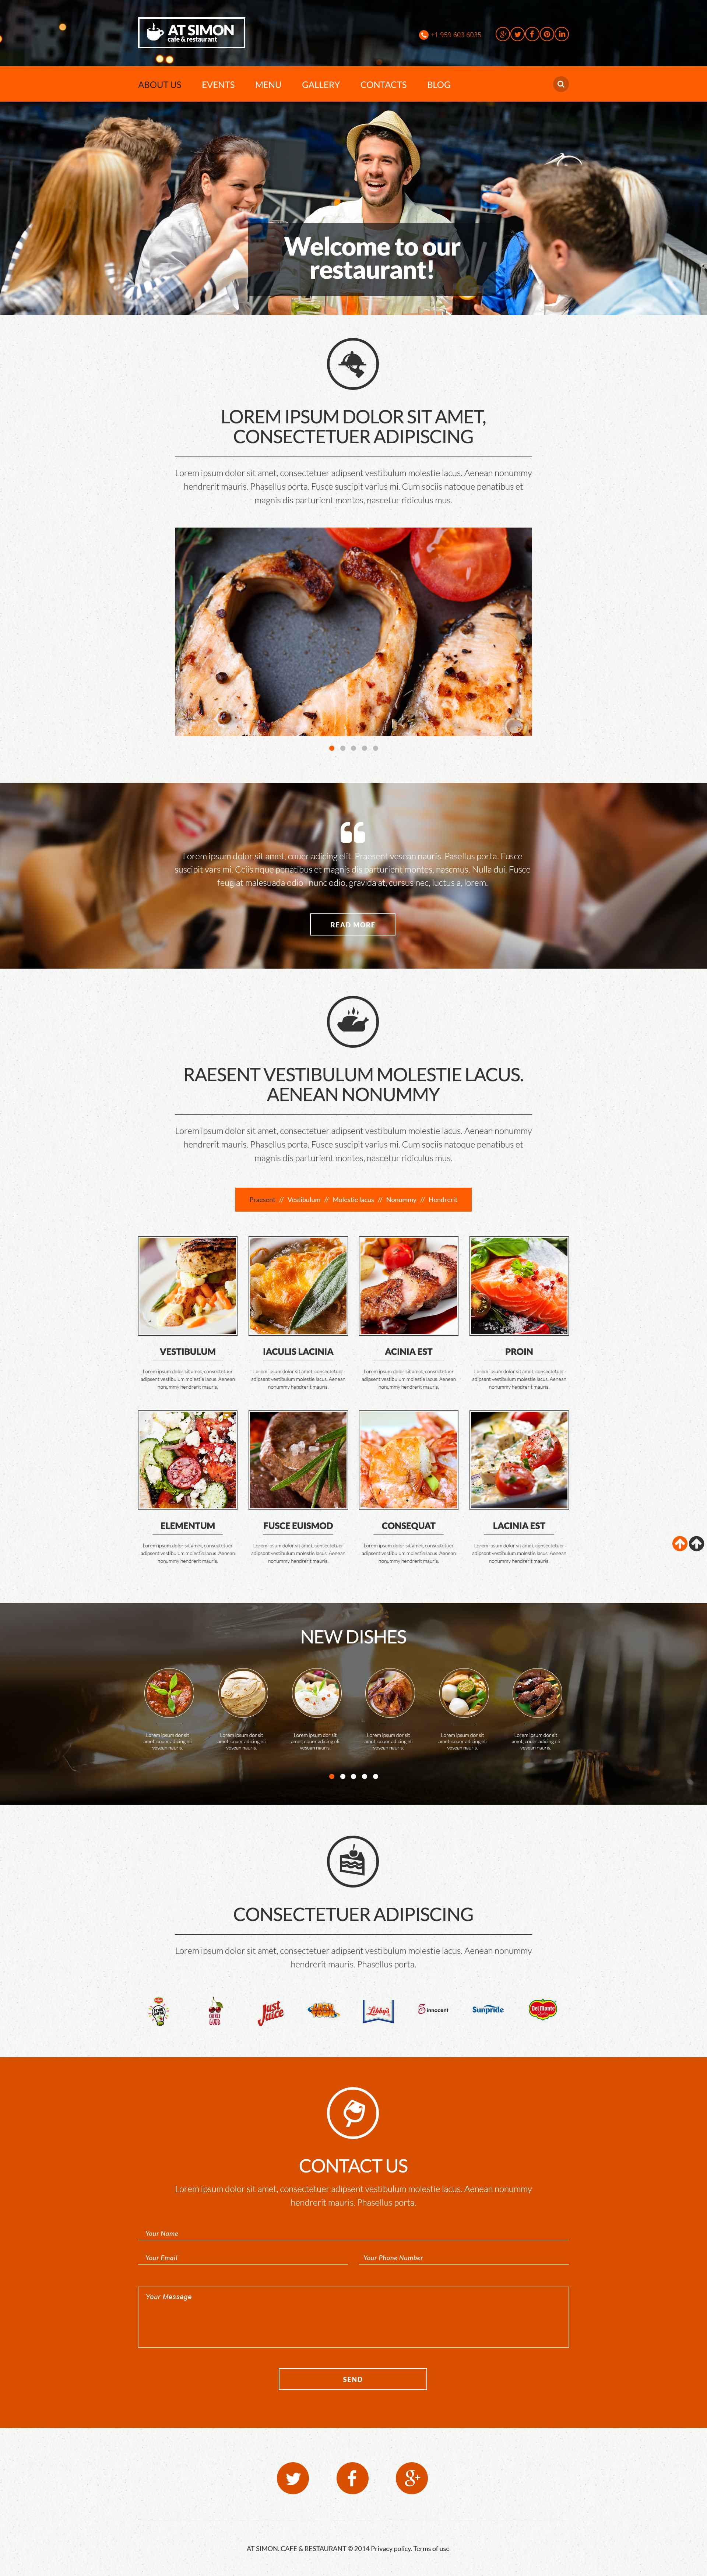 The AT Simin Review Restaurant Responsive Javascript Animated Design 53010, one of the best website templates of its kind (cafe and restaurant, most popular), also known as AT Simin review restaurant website template, food website template, critic website template, reviewer website template, tasty website template, delicious website template, dish website template, menu website template, dining and related with AT Simin review restaurant, food, critic, reviewer, tasty, delicious, dish, menu, dining, etc.